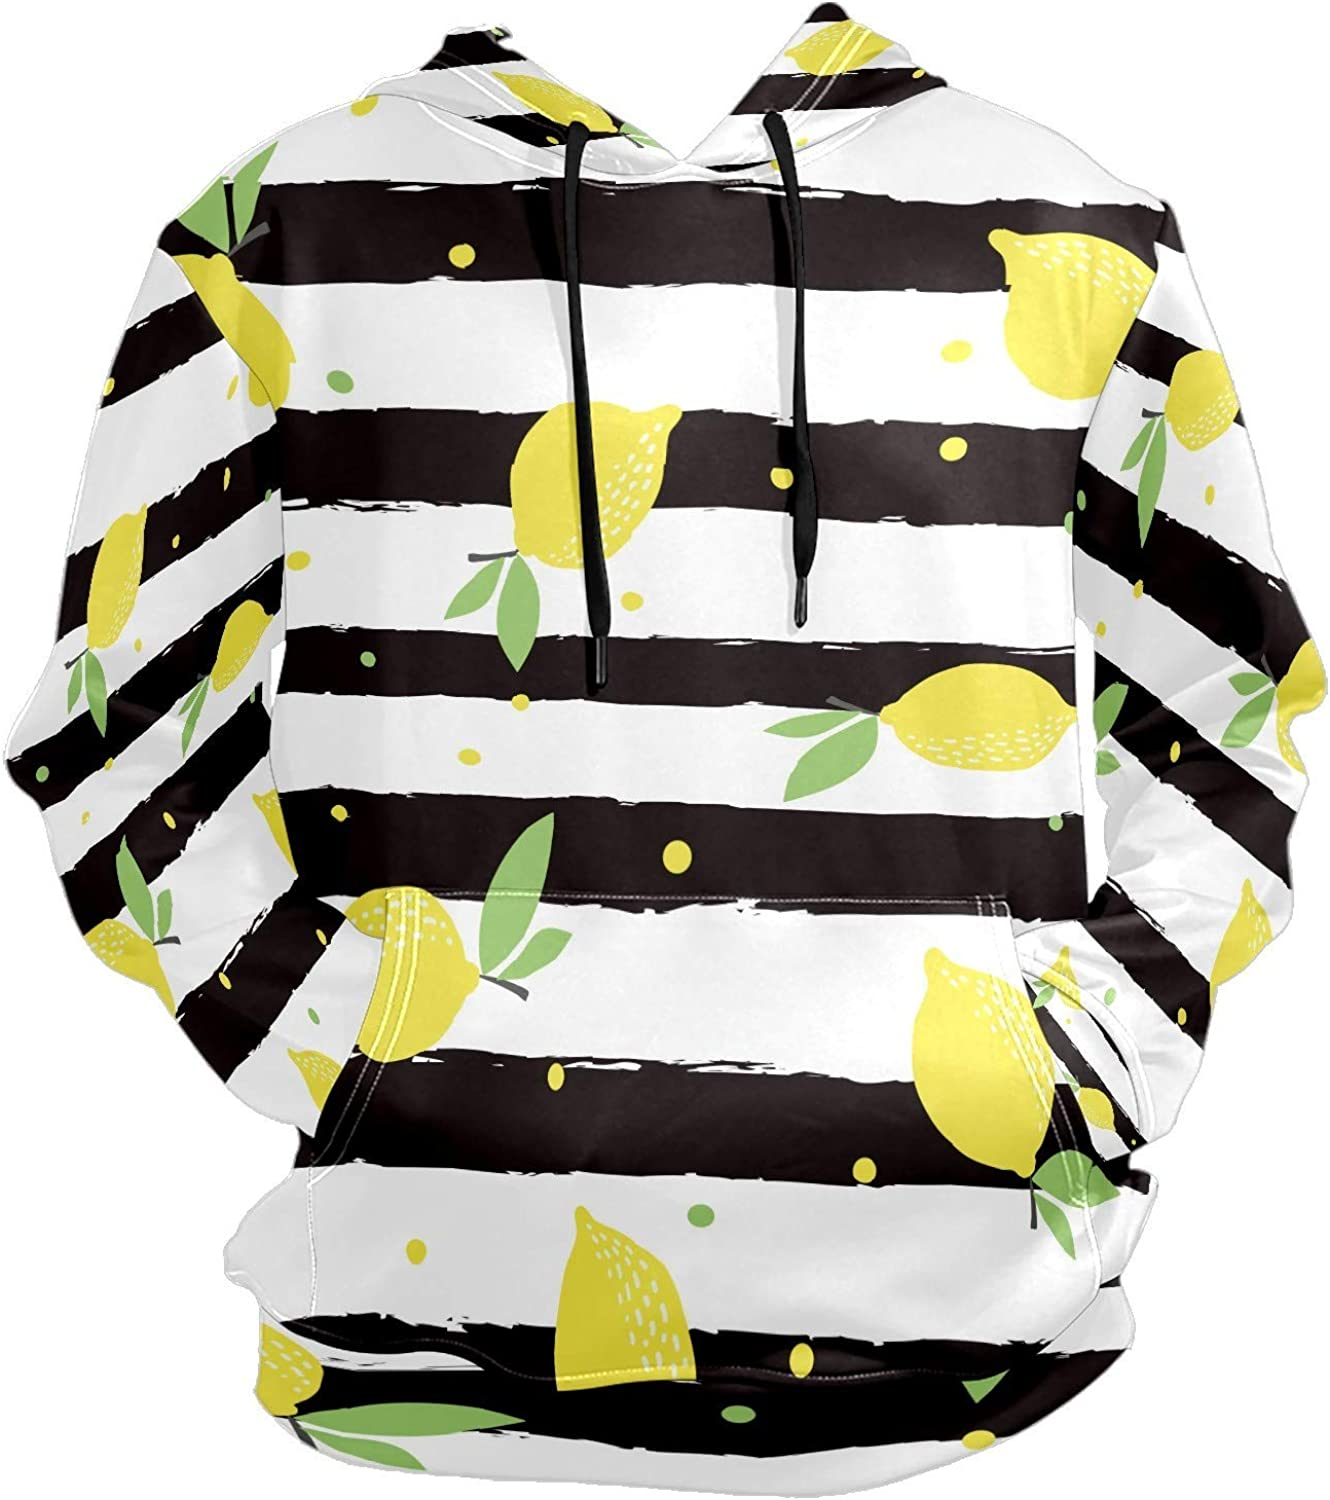 Men's Sport Hoodie Lemon Black And White Striped Big and Tall Hoodies for Men Women Oversized Hooded Sweatshirt Hip Hop Pullover Hoodie Midweight Hood for Boys Girls